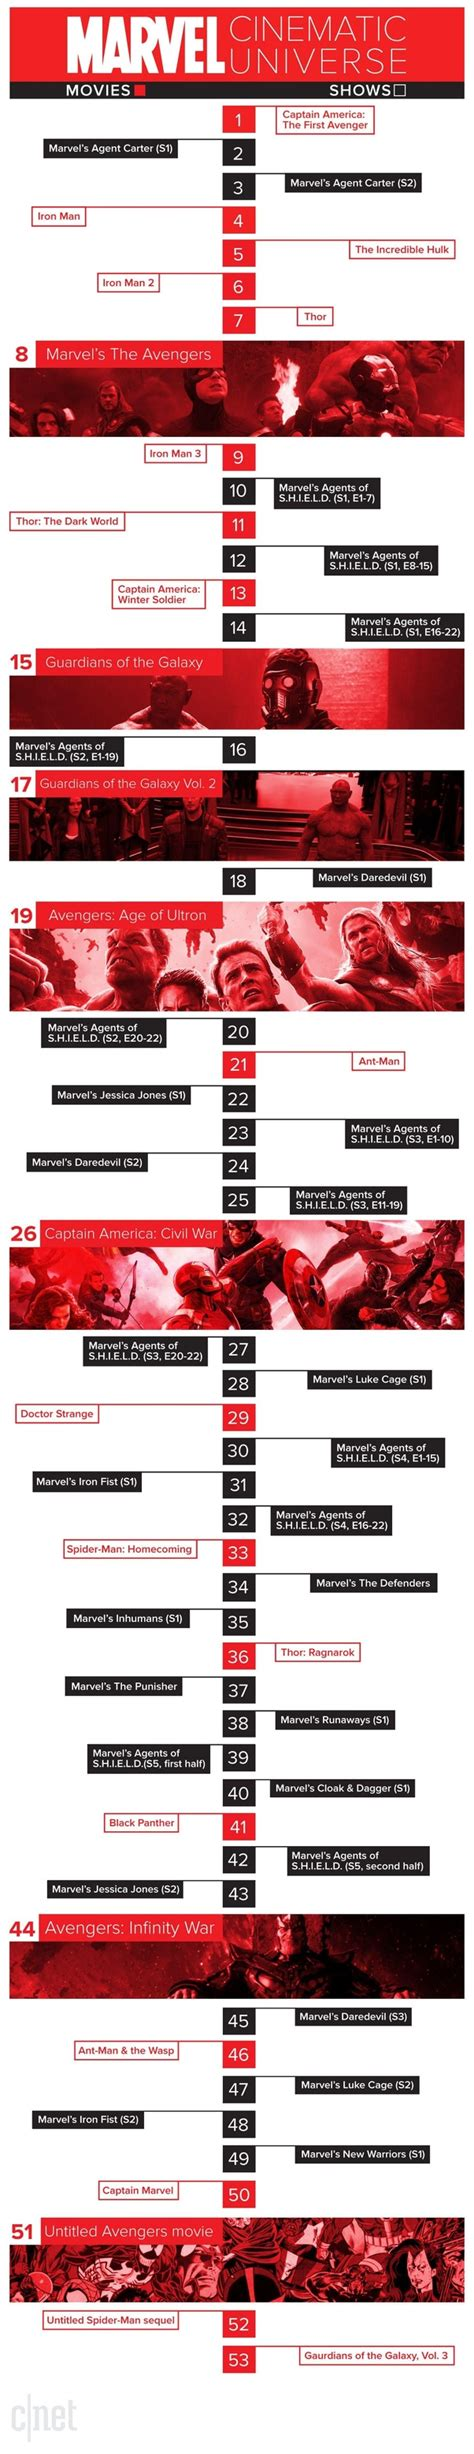 marvel film sequence in which order should one watch all the marvel movies and